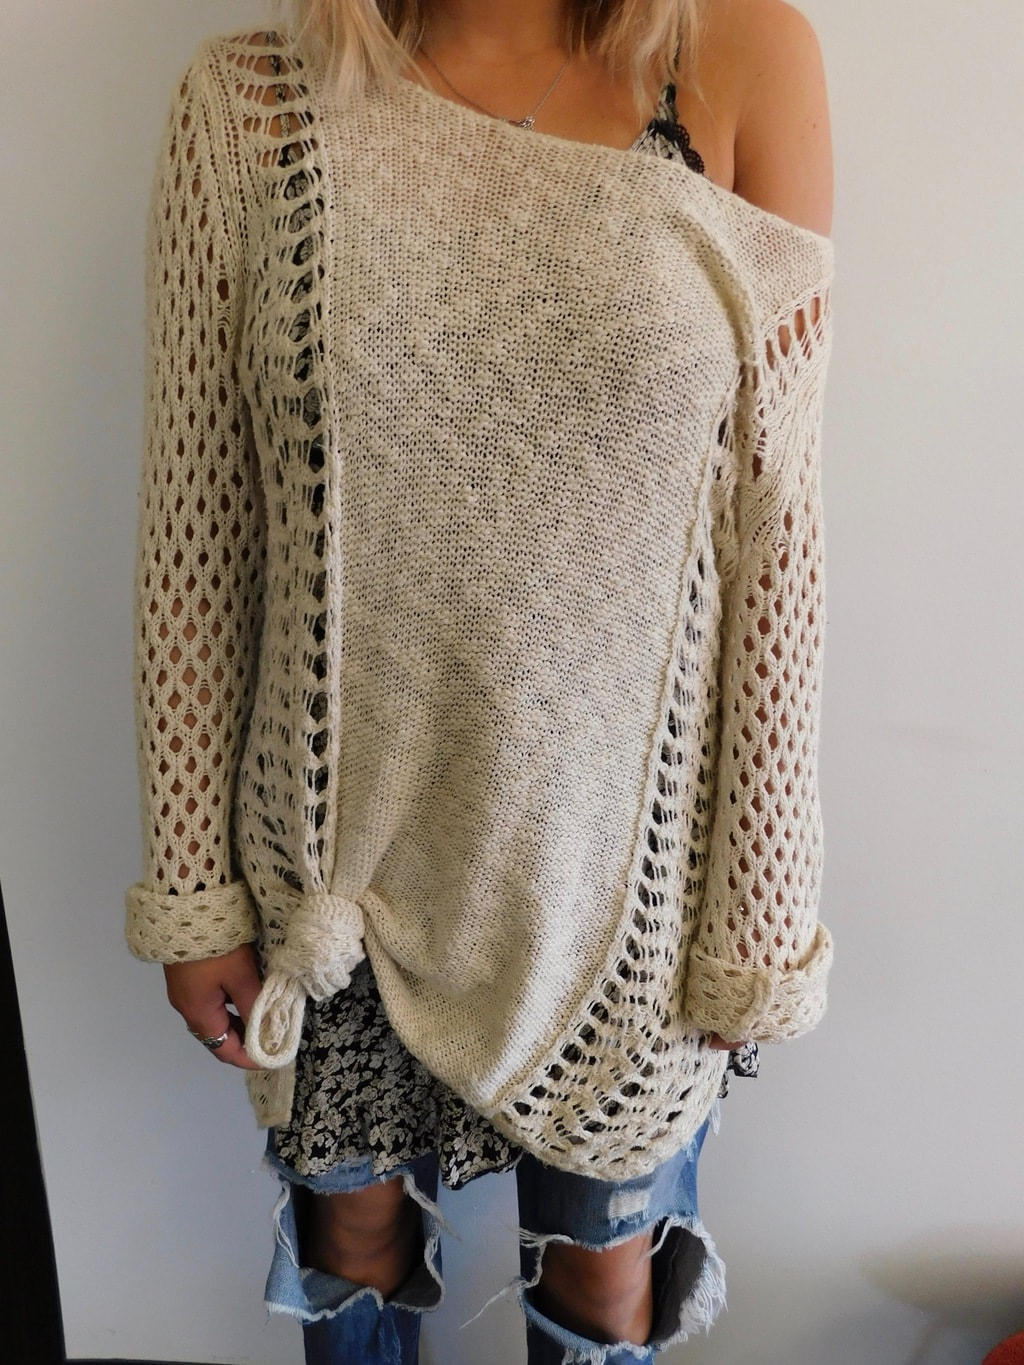 Lauren sports an oversized, casual oatmeal sweater with open weave arms and a black and white floral print camisole peeking out from underneath.